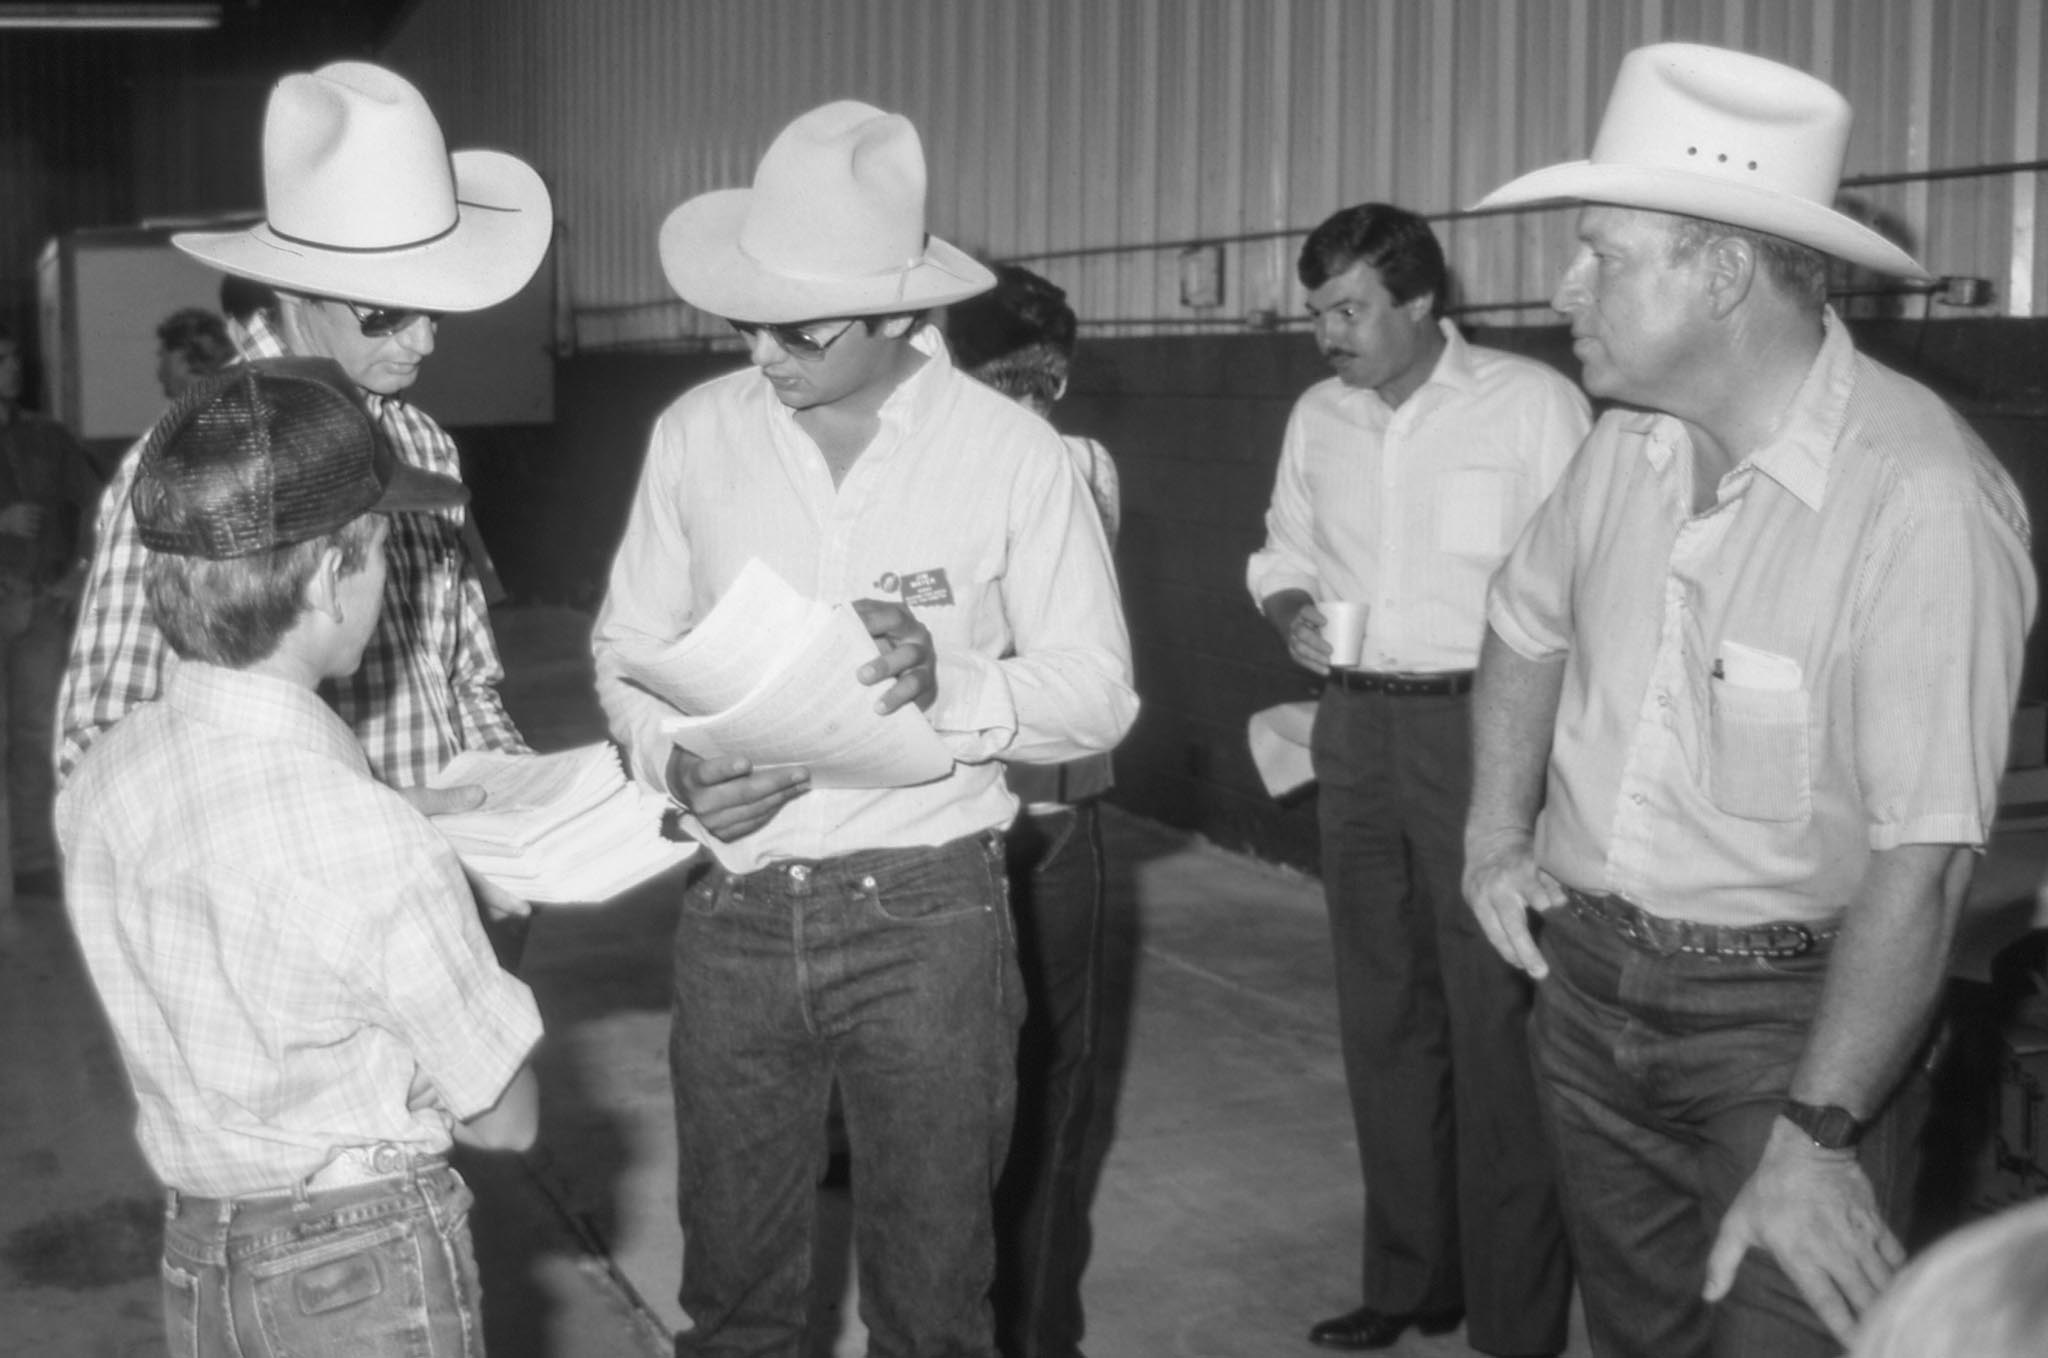 OKFB Young Farmers & Ranchers often sponsor agricultural activities and contests for youth. This photo was taken at the OKFB YF&R-sponsored Livestock Evaluation Field Day in 1986, where Texas County Farm Bureau member Jim Mayer, who also served as state YF&R chairman (center), assisted with the planning and organization of the contest.